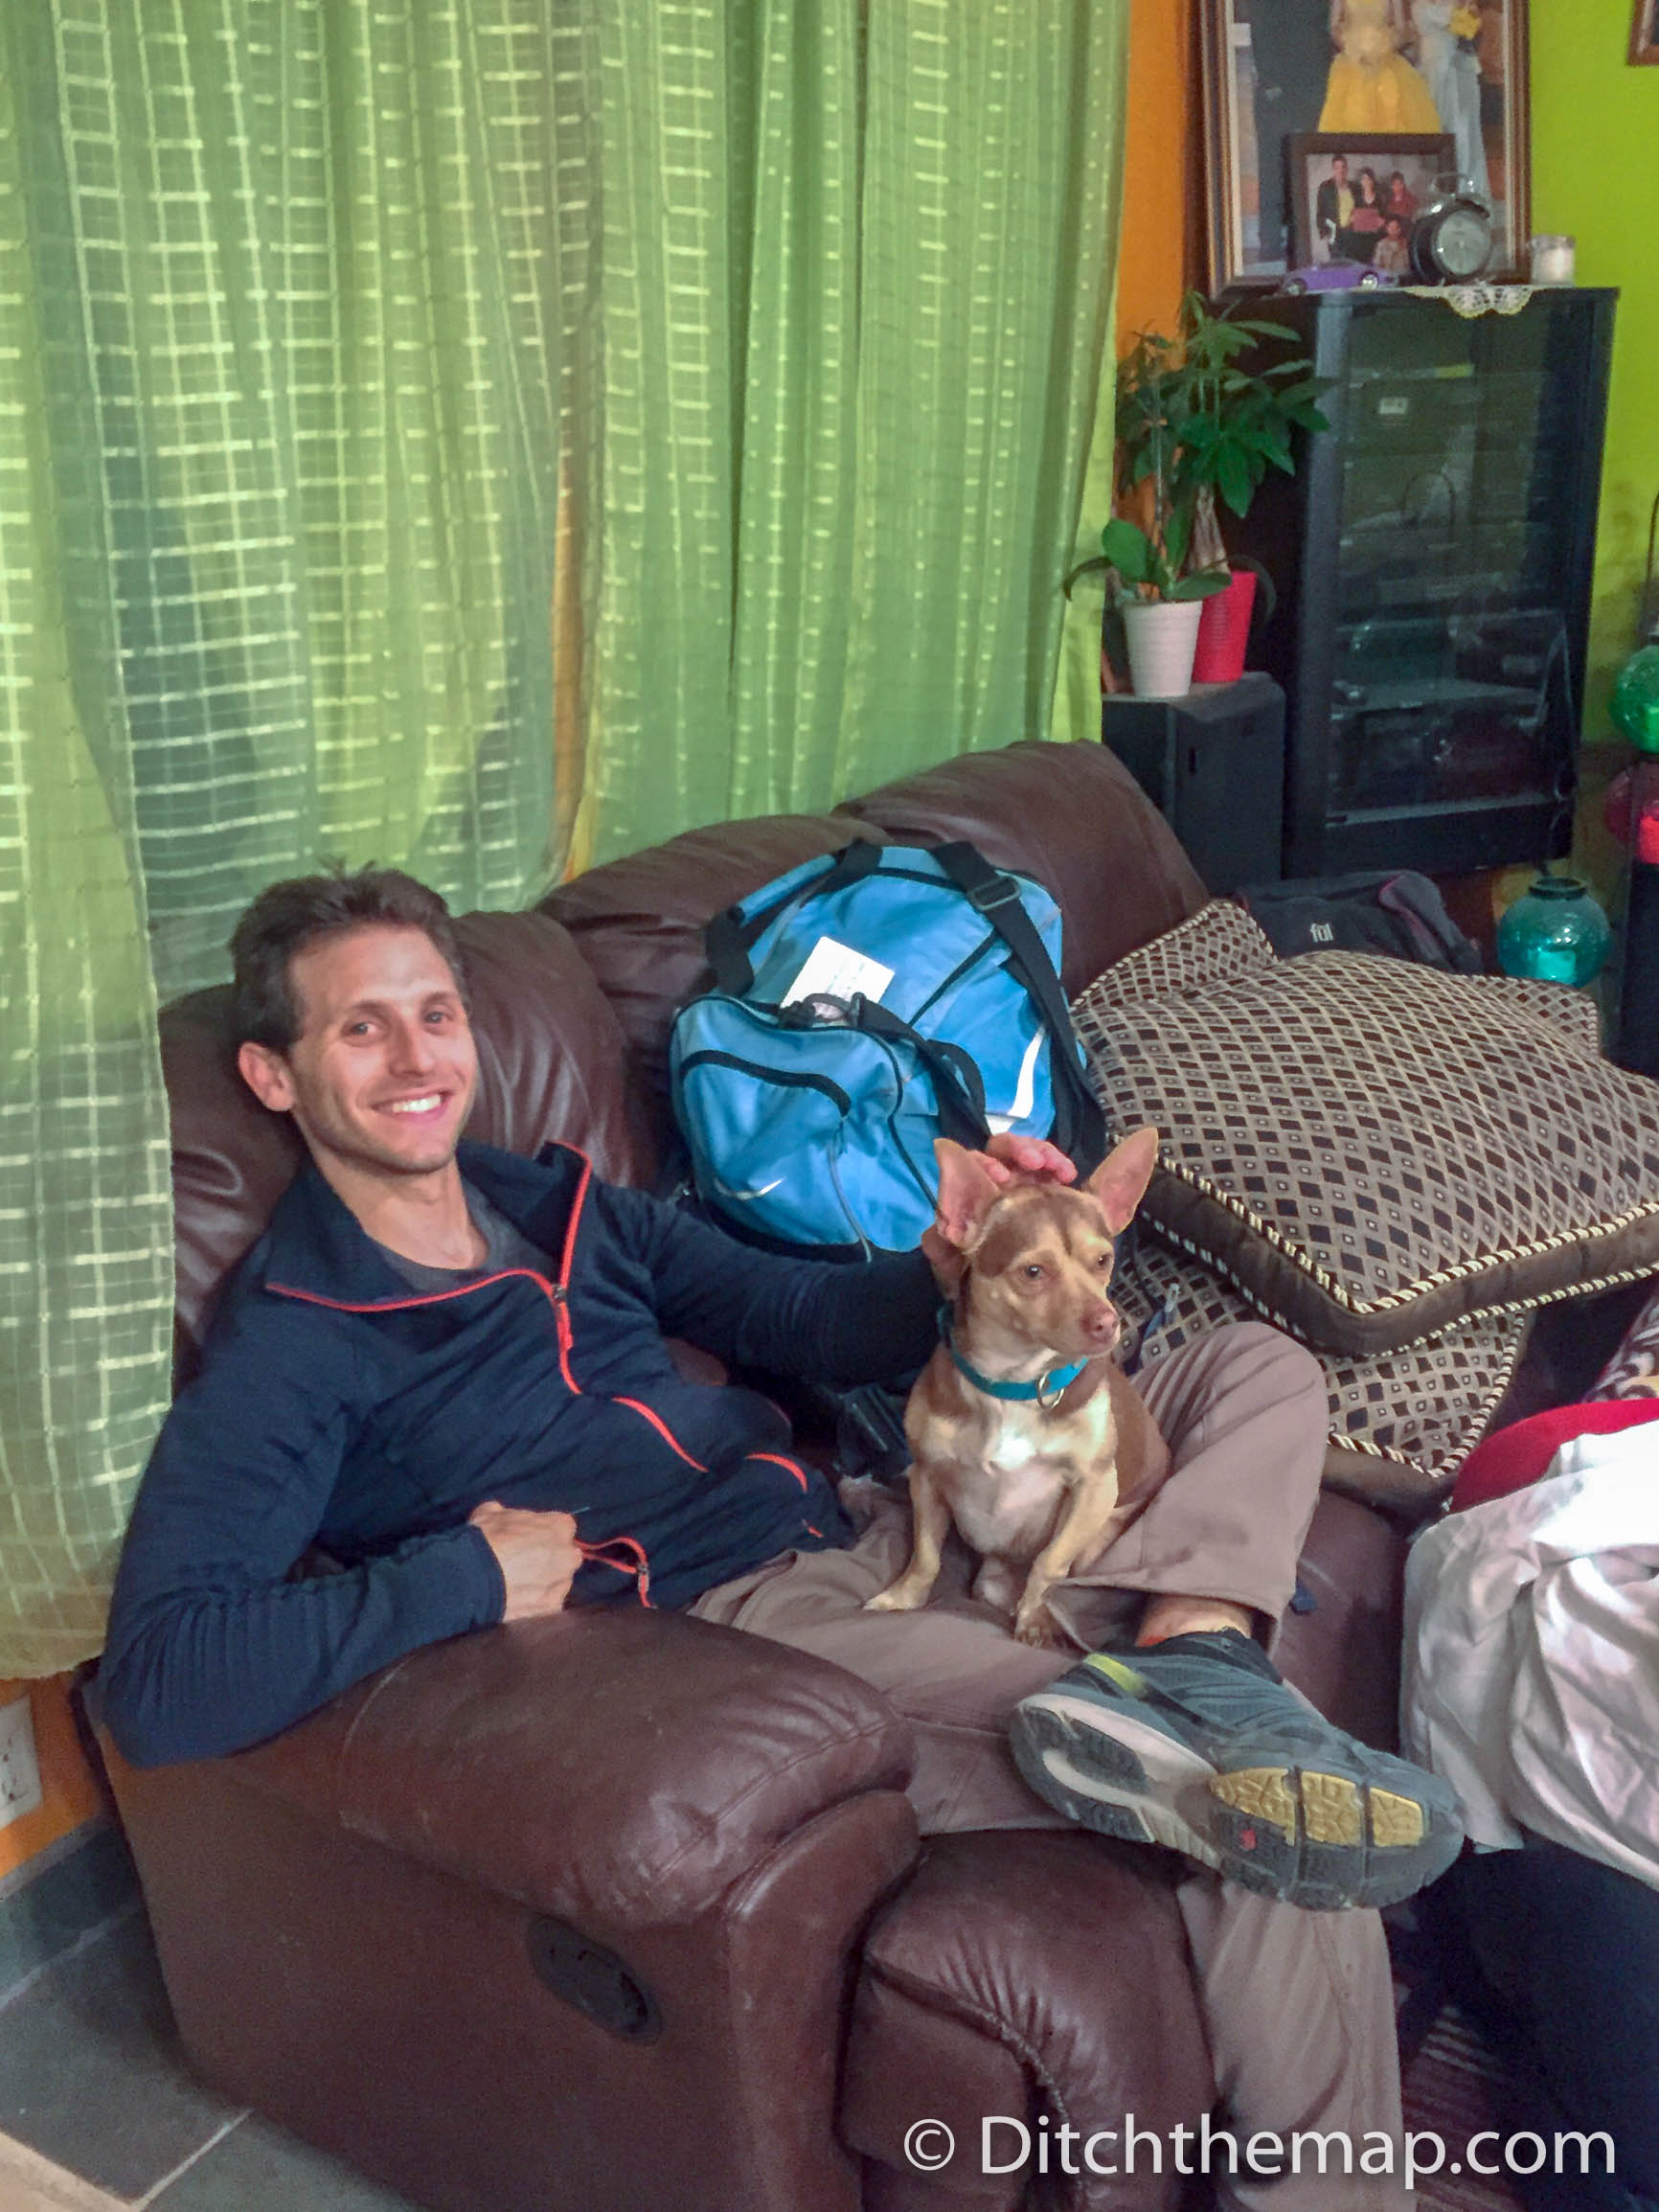 Couchsurfing in Idaho with Niko the chihuahua